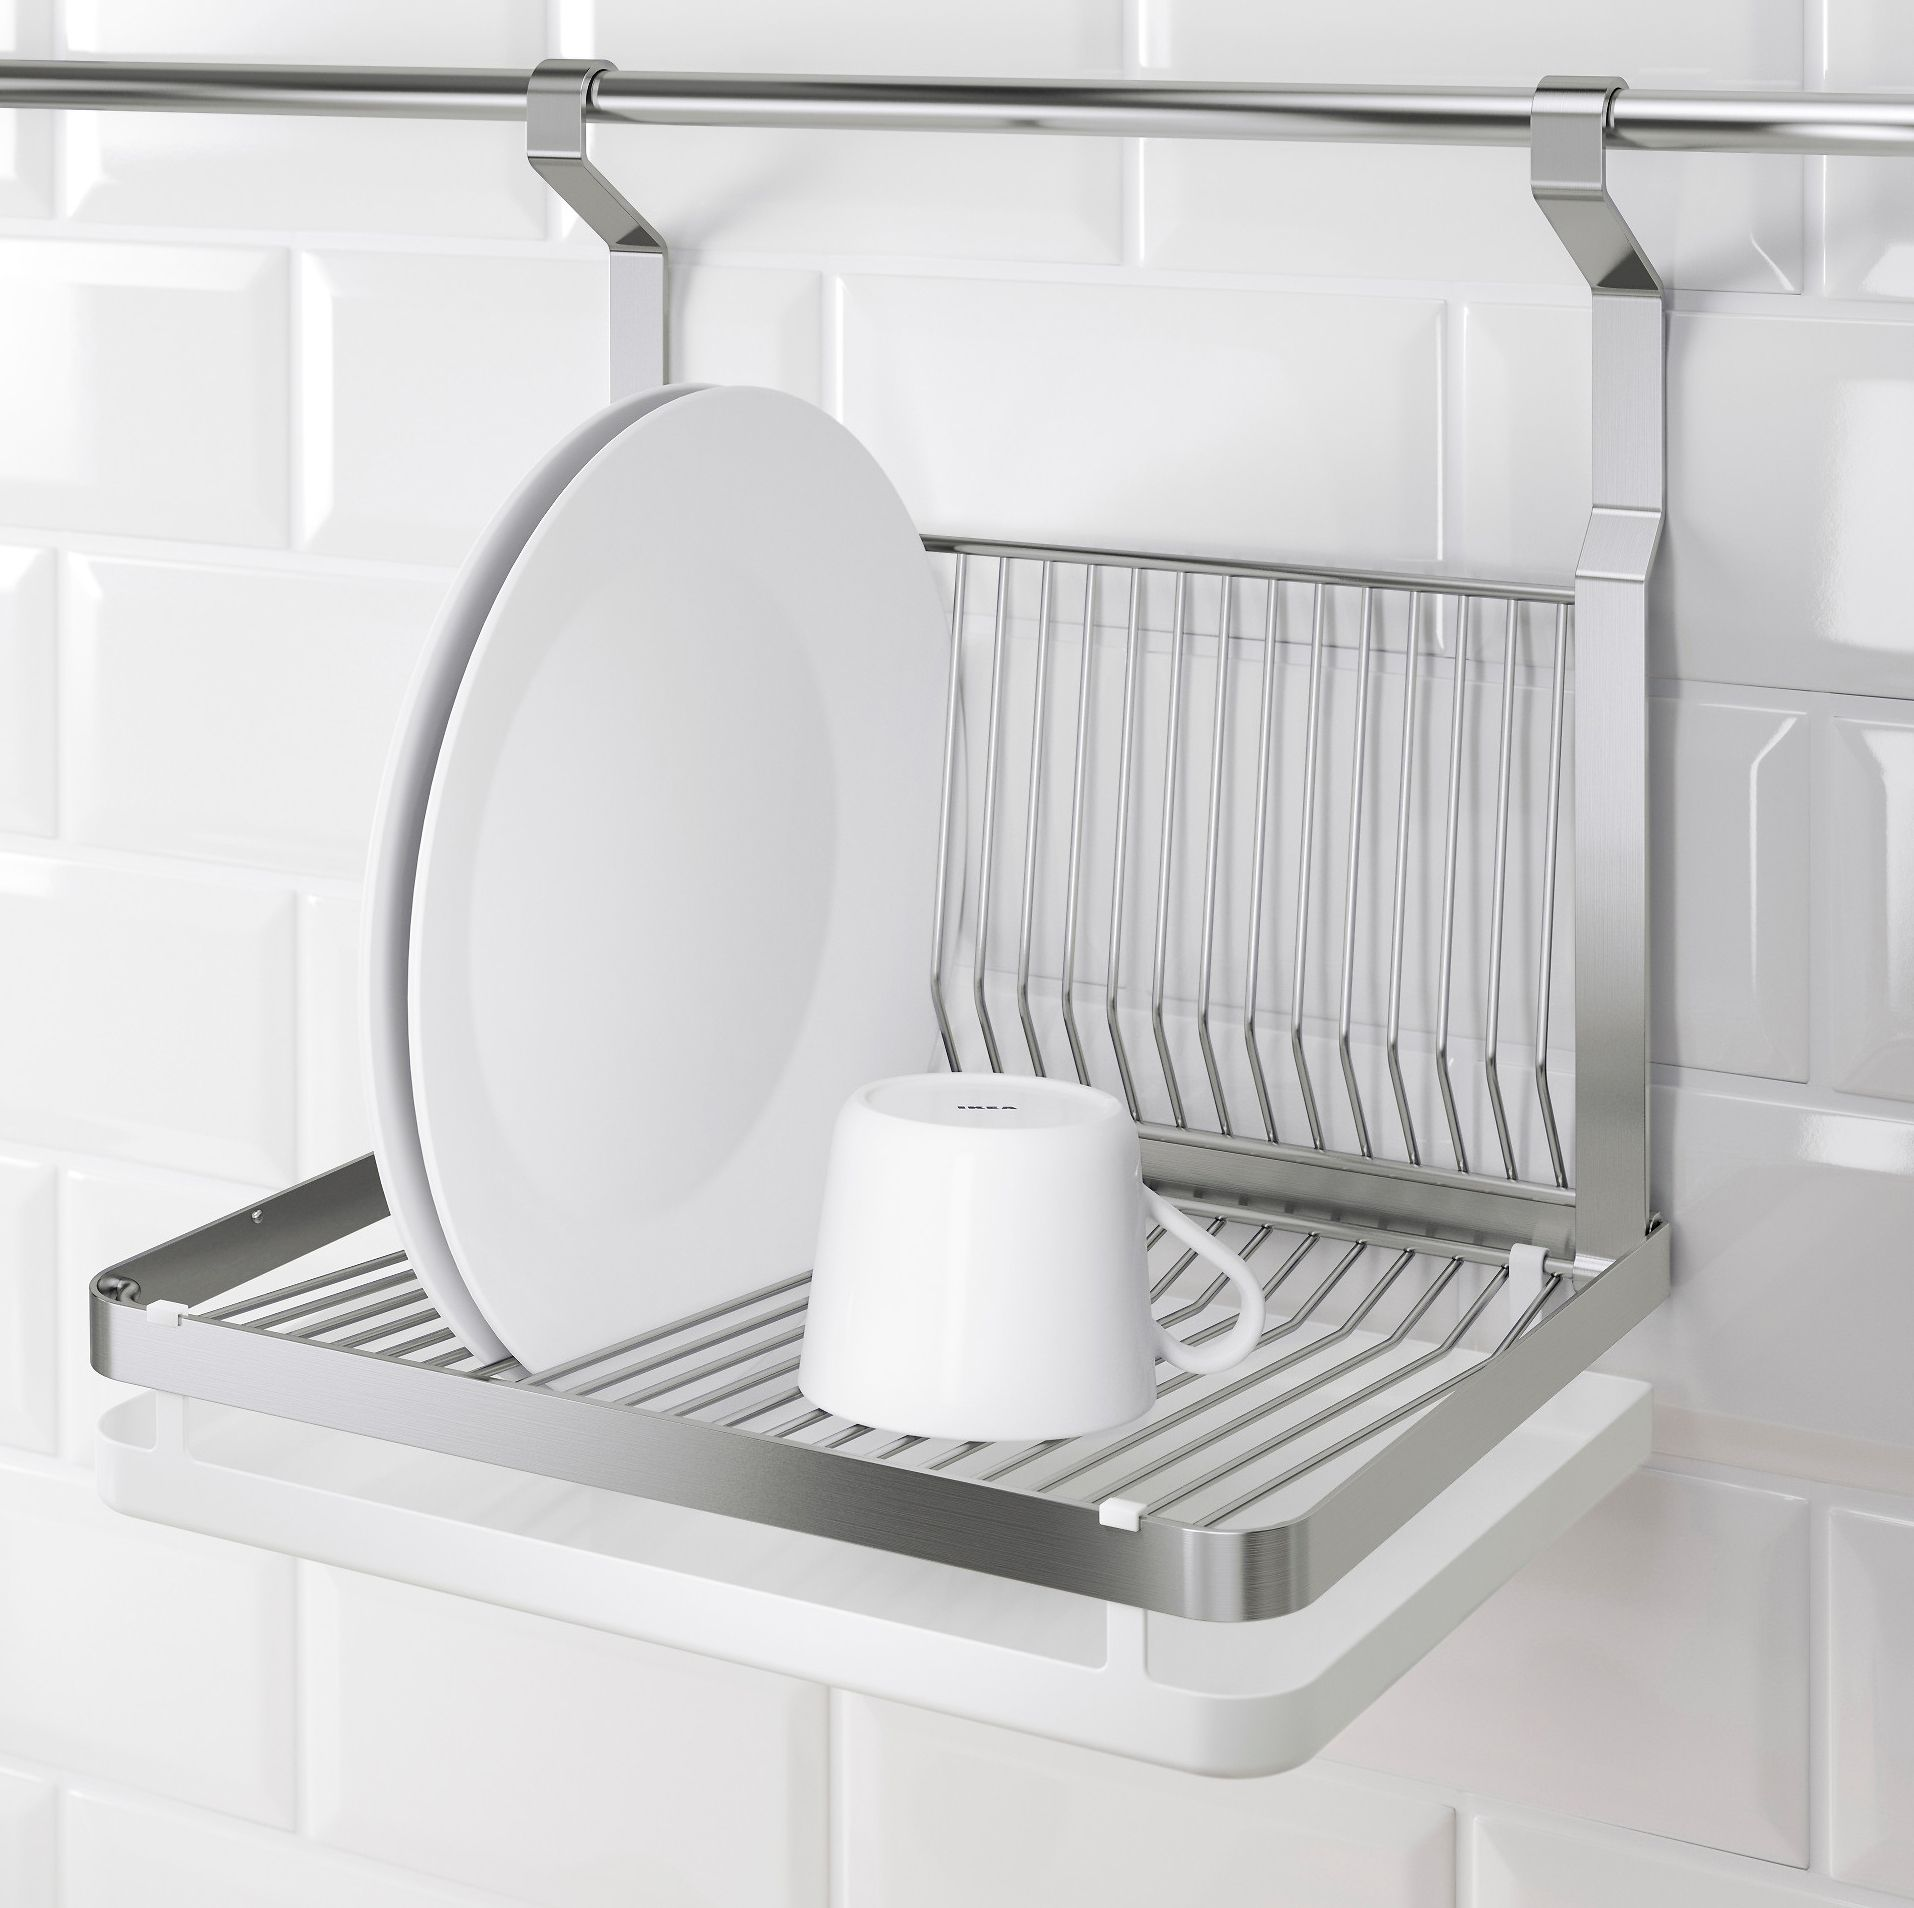 10 Design-y Dish Racks for Your Compact Kitchen | Dish racks, Dish ...